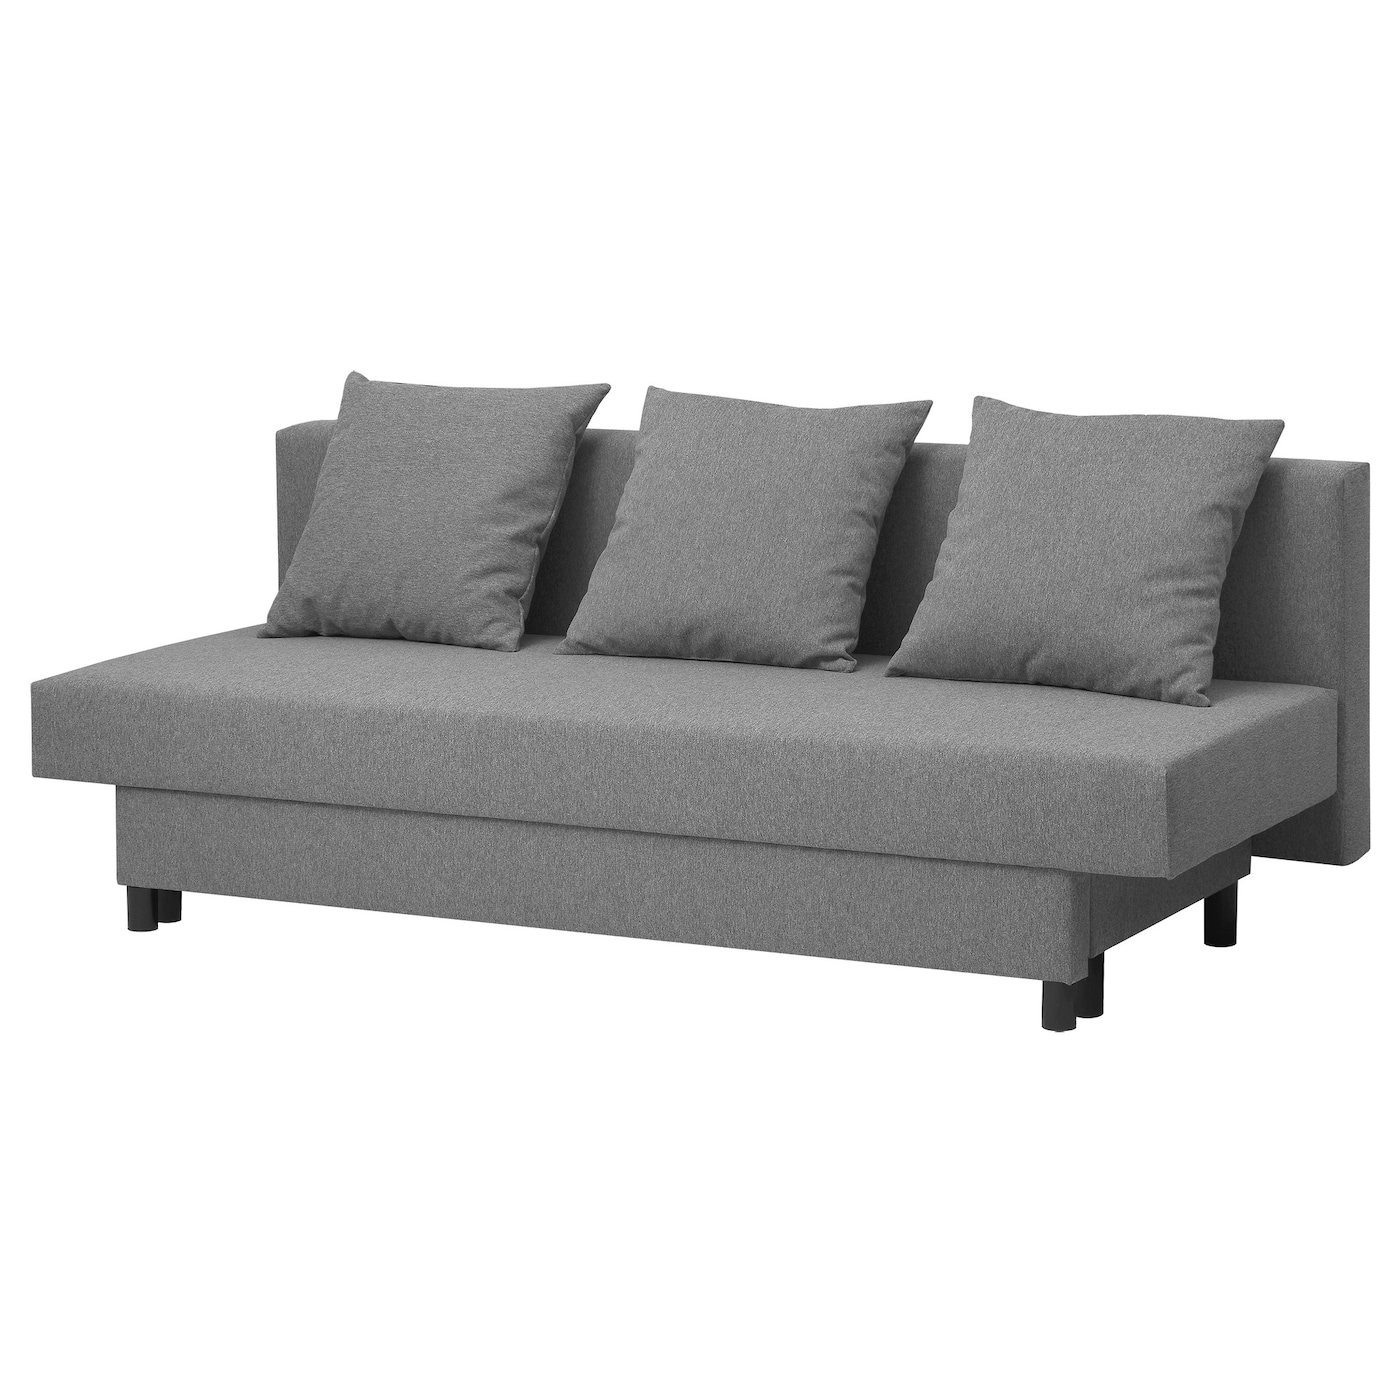 Ikea Asarum Three Seat Sofa Bed Readily Converts Into A